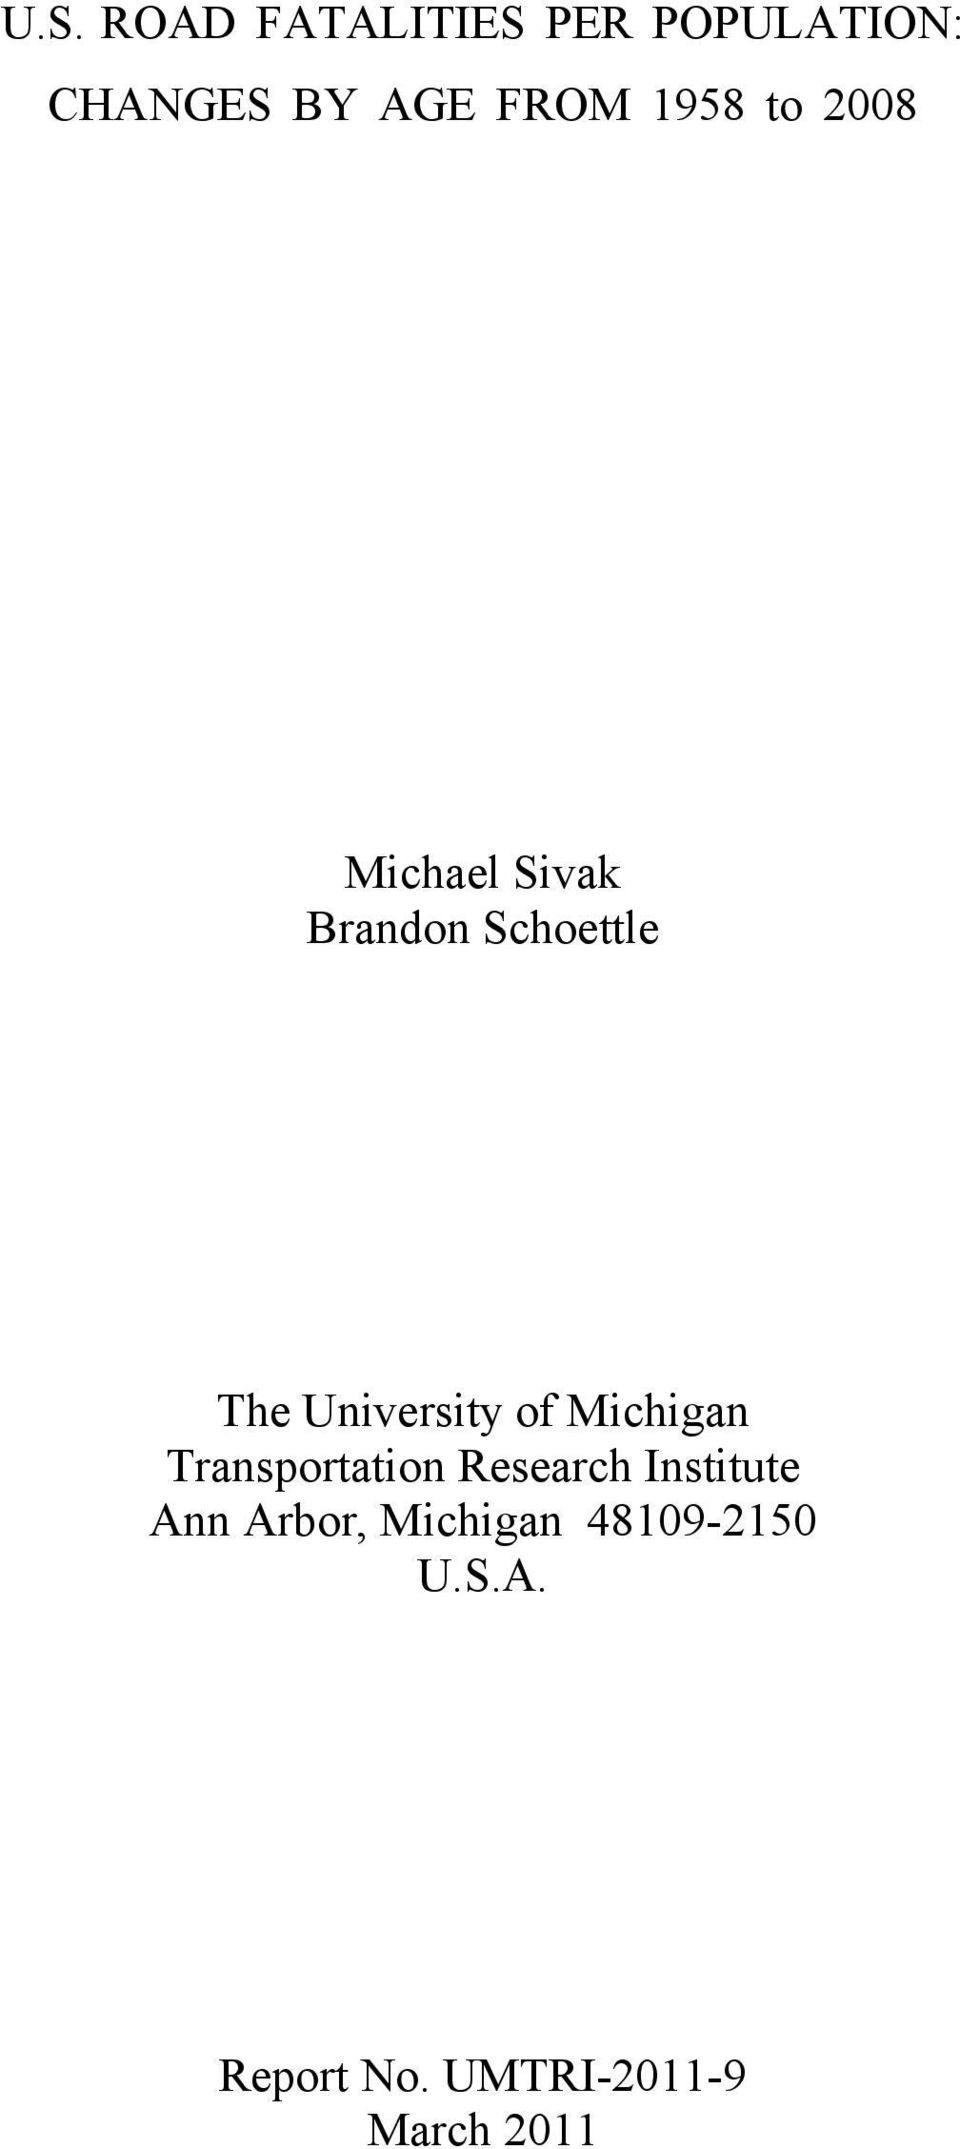 University of Michigan Transportation Research Institute